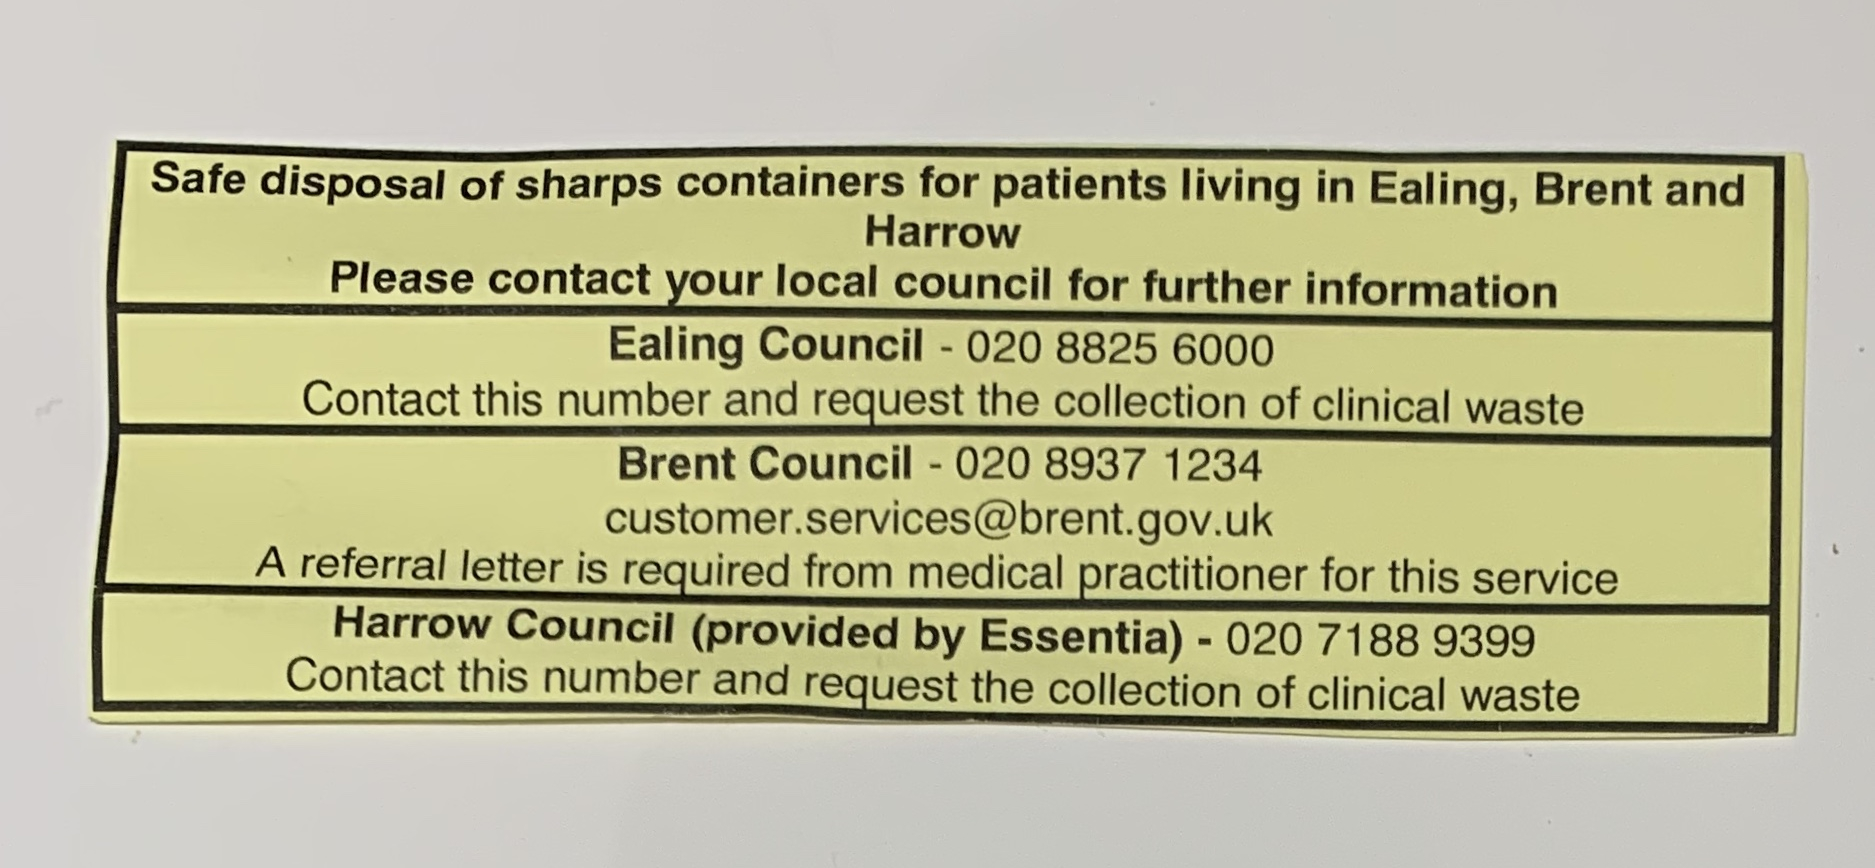 Sharps disposal in NW London